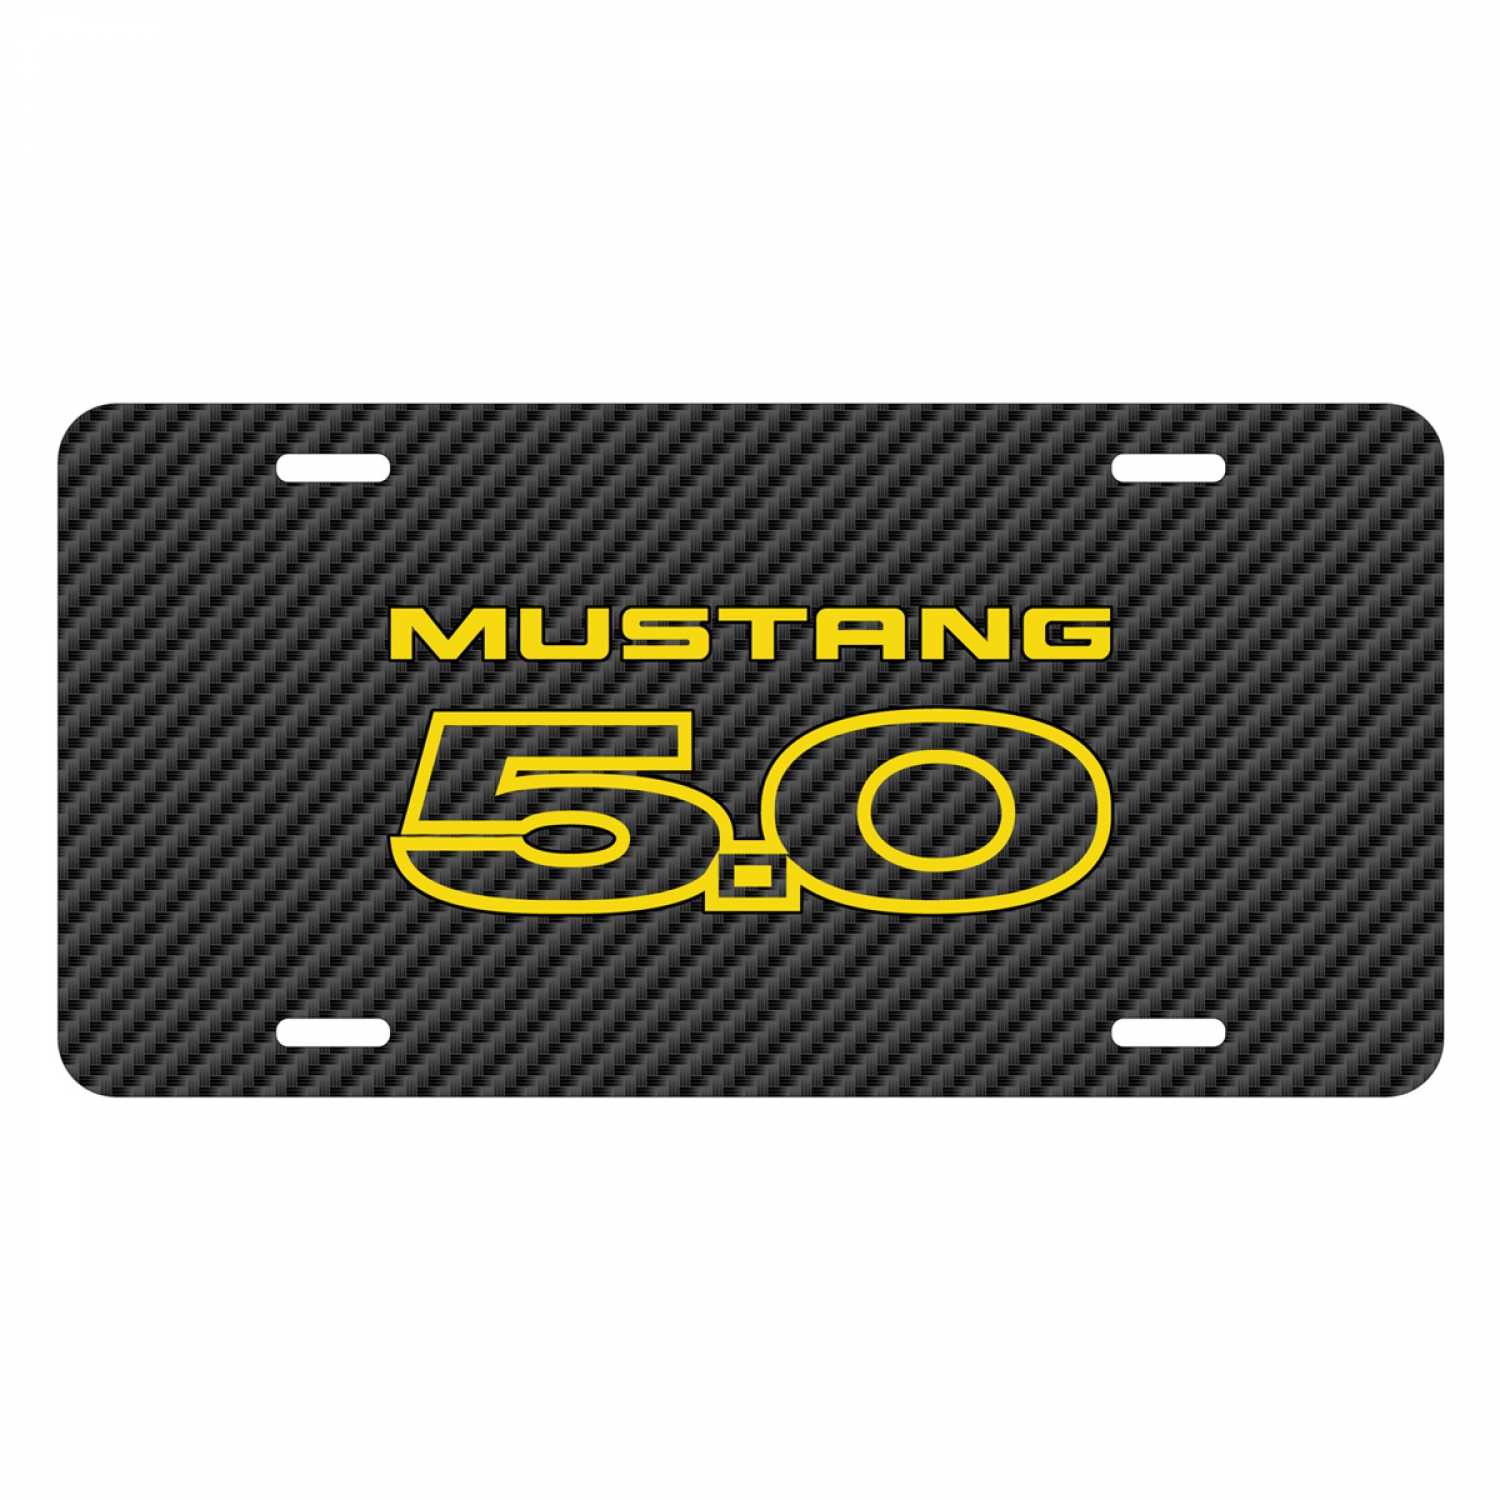 Ford Mustang 5.0 in Yellow Black Carbon Fiber Texture Graphic UV Metal License Plate